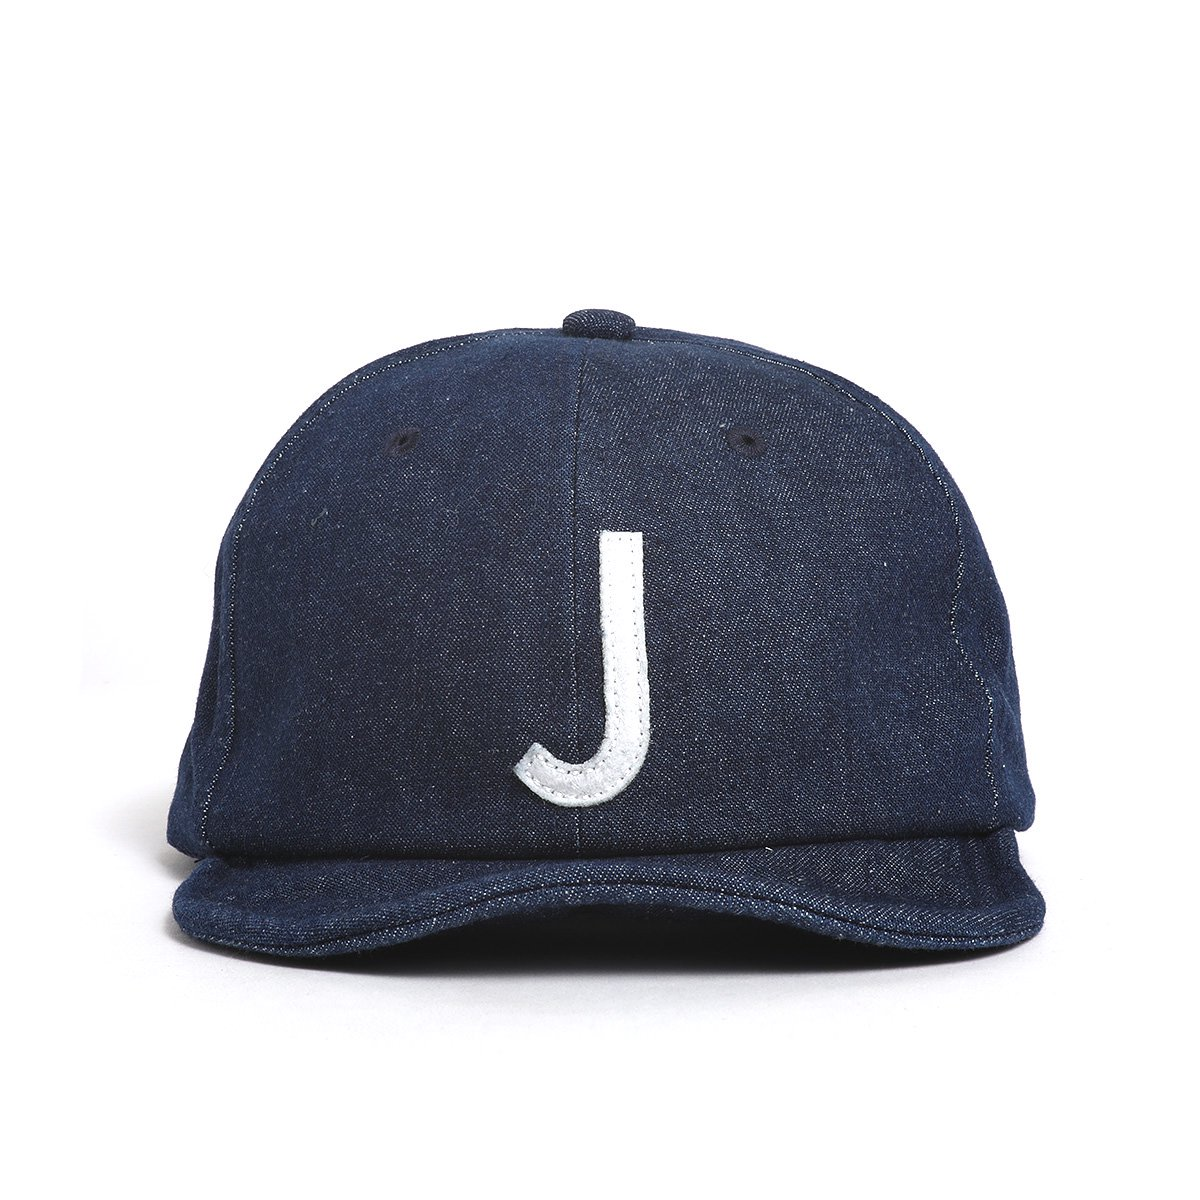 AtoZ Denim Logo CAP 詳細画像8